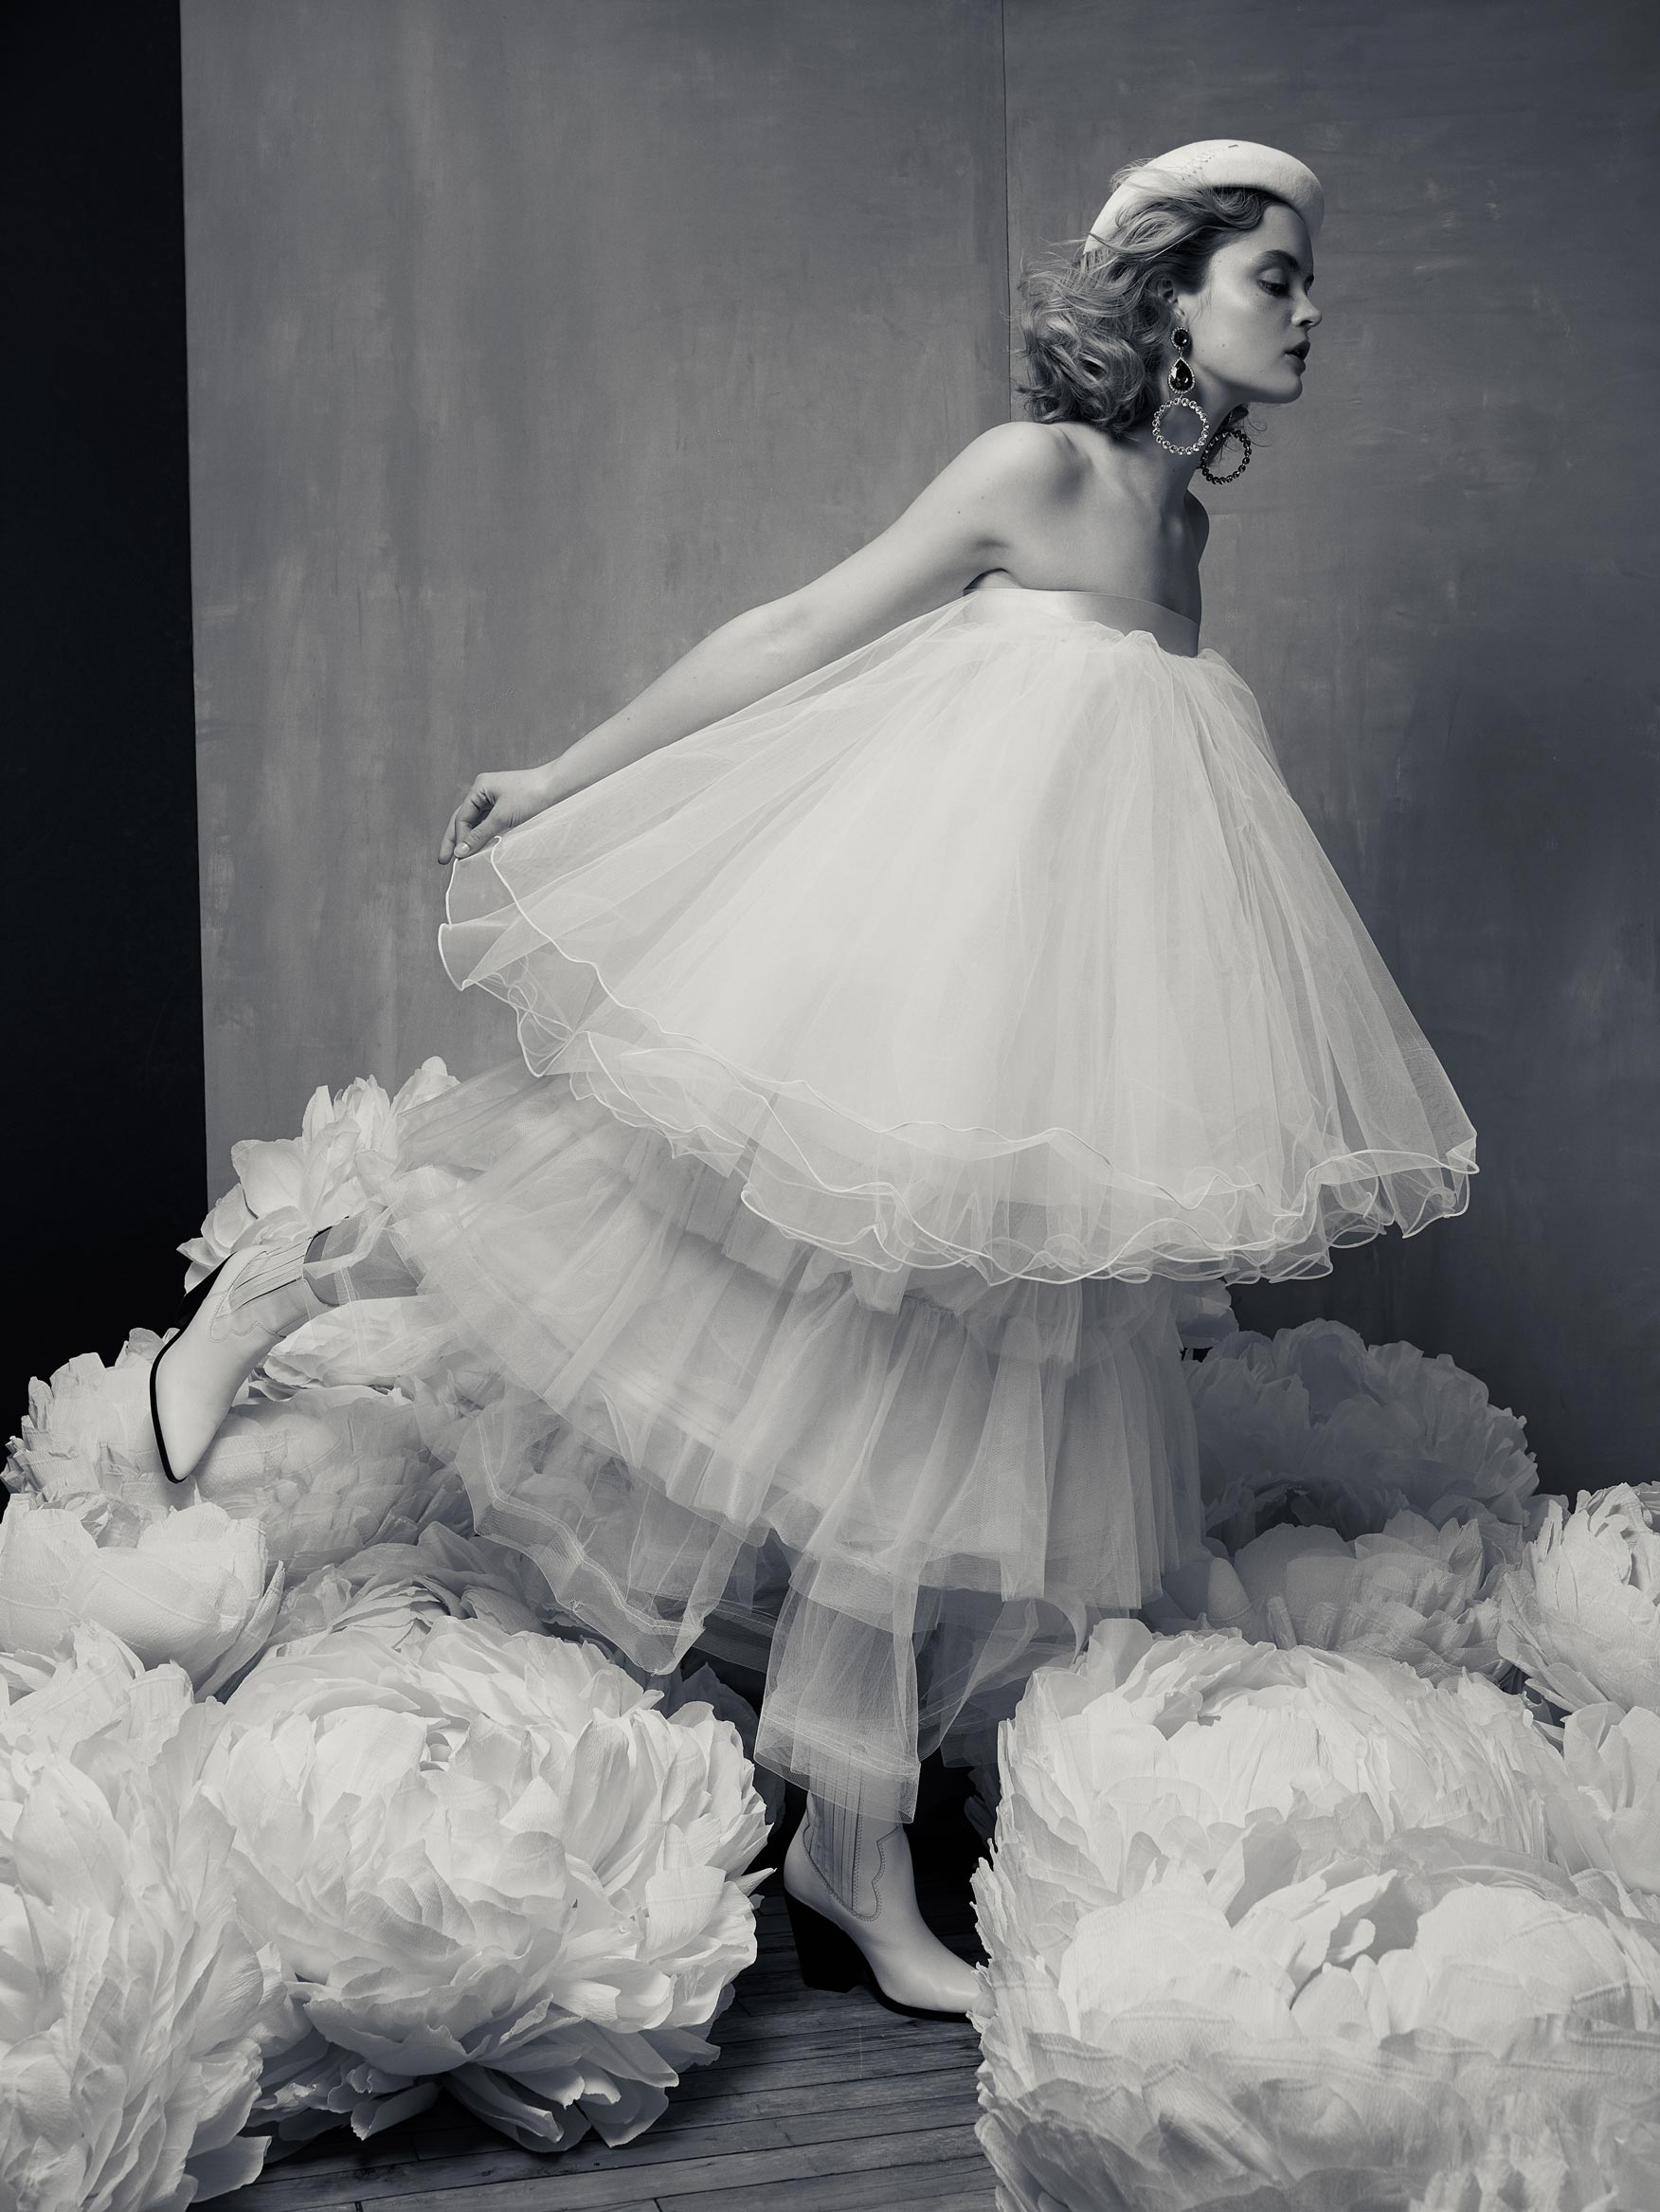 Studio black and white portrait photo of a tule dress and giant flowers